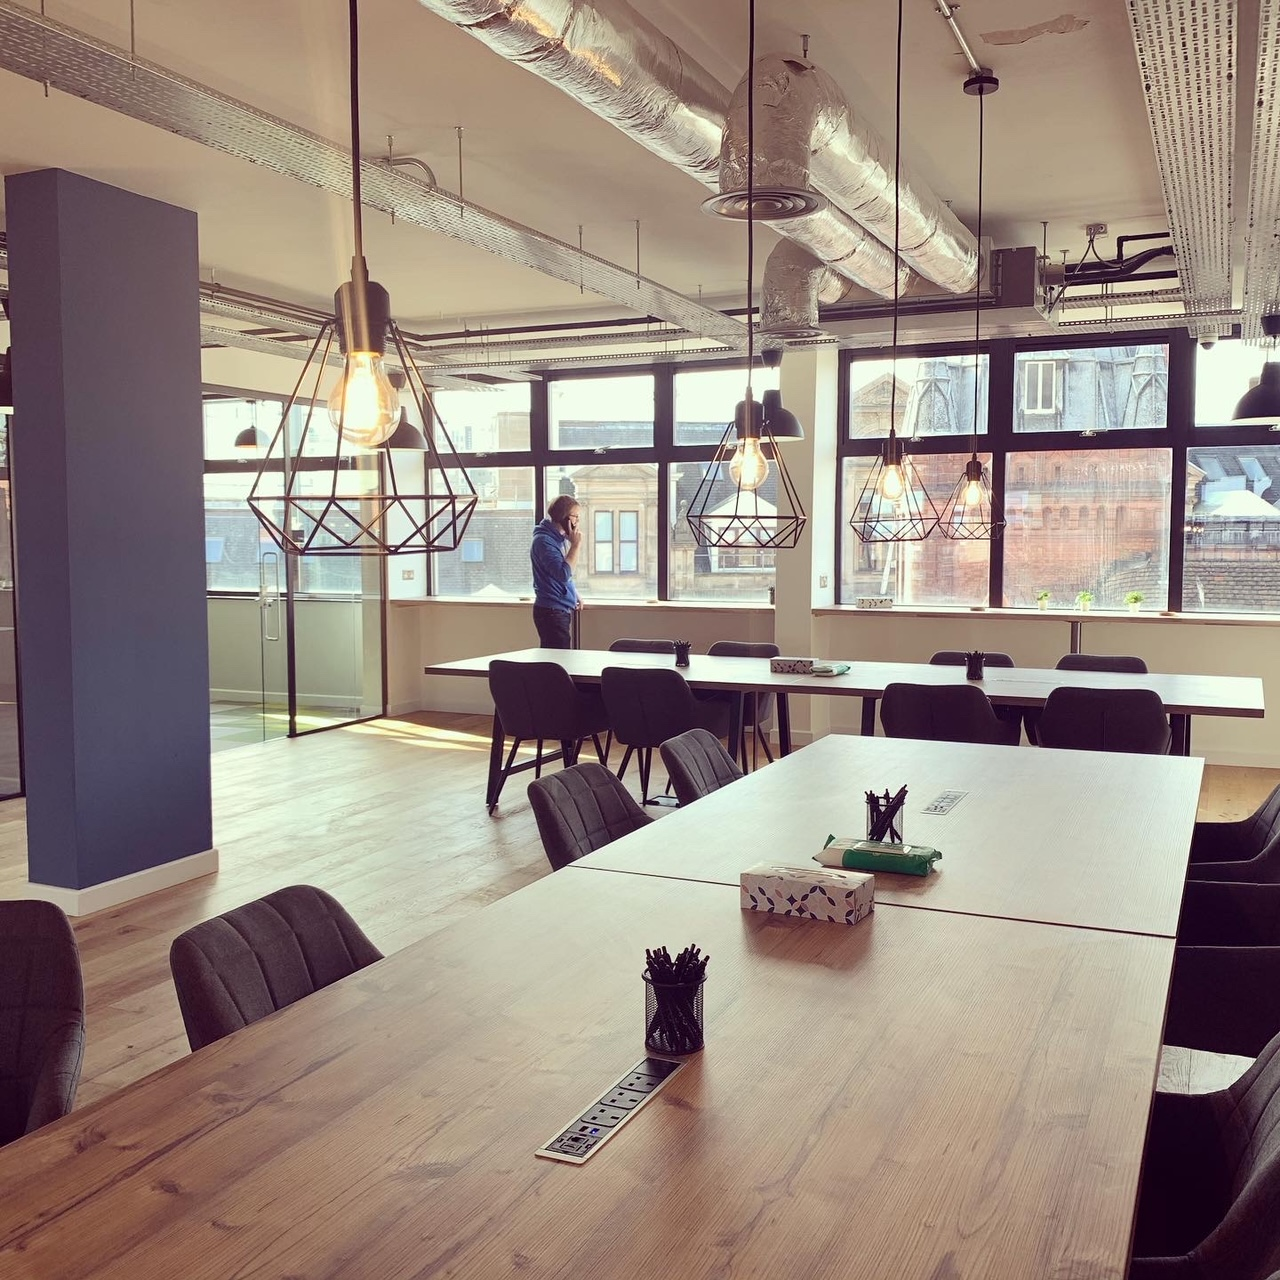 State-of-the-art flexible workspace Cubo opens in Nottingham